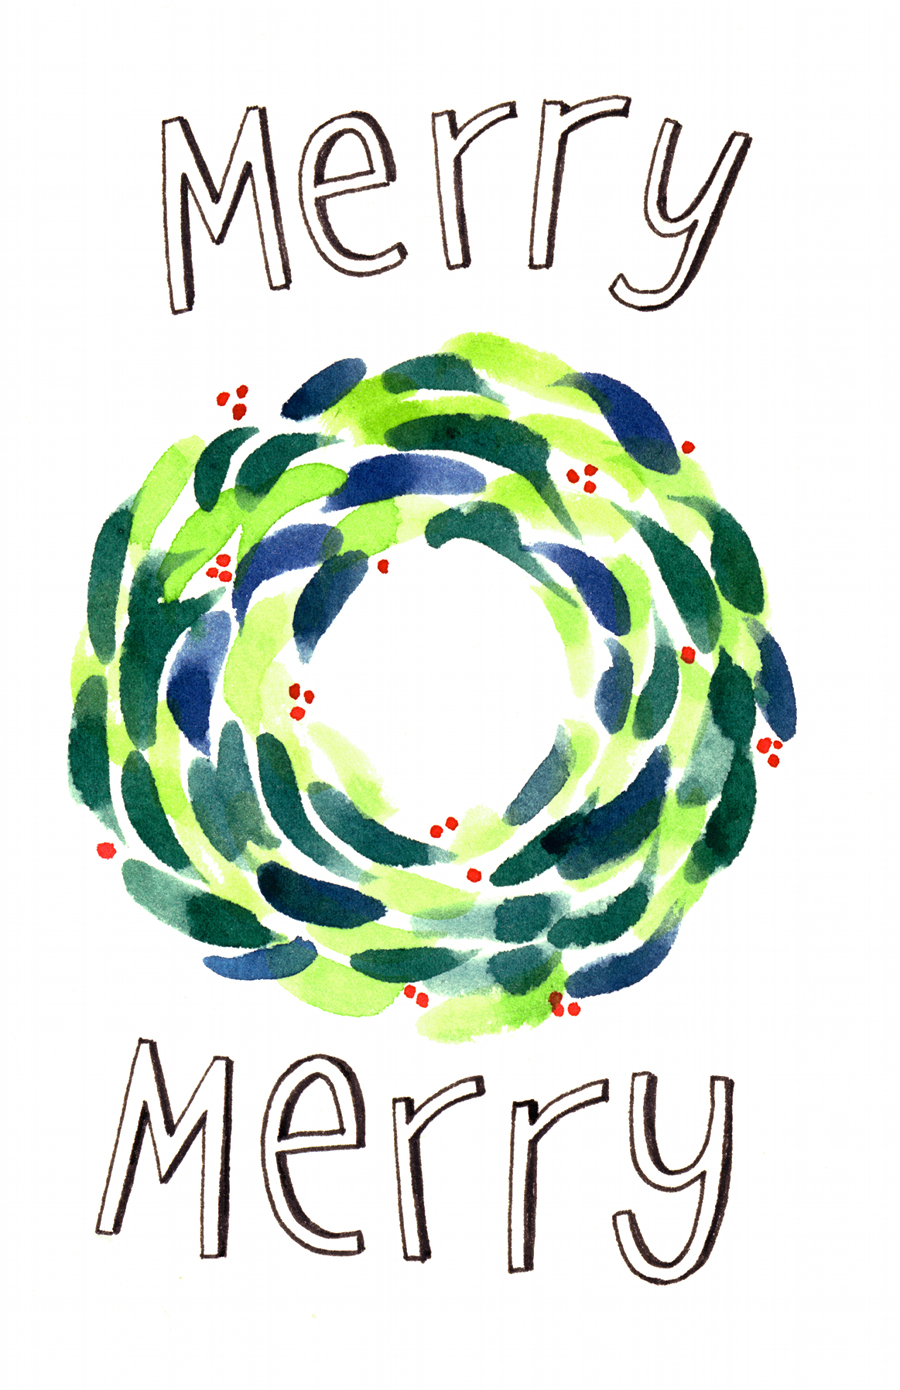 Merry Merry Wreath2_web.jpg